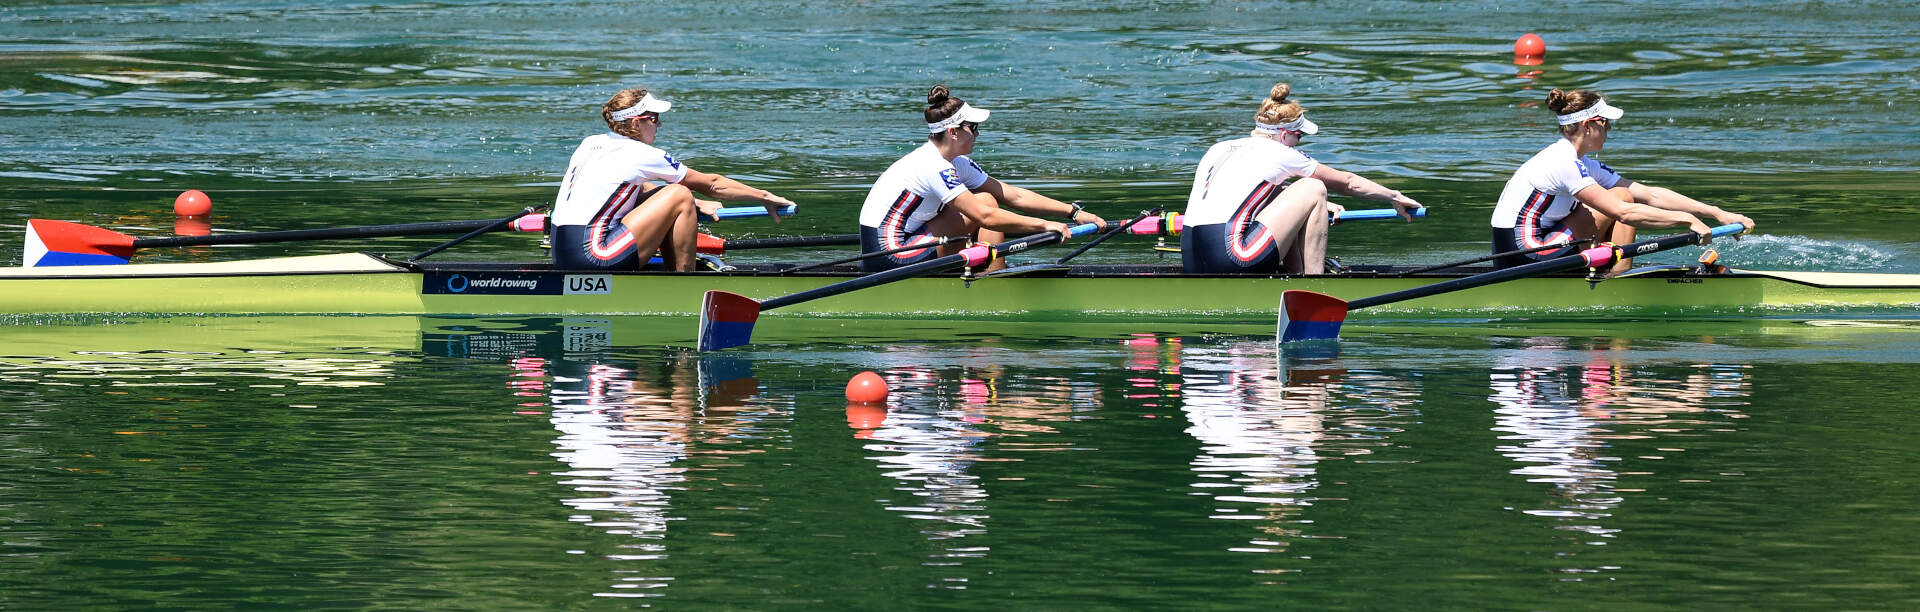 World Rowing Cup III Luzern W4 Bronze USA